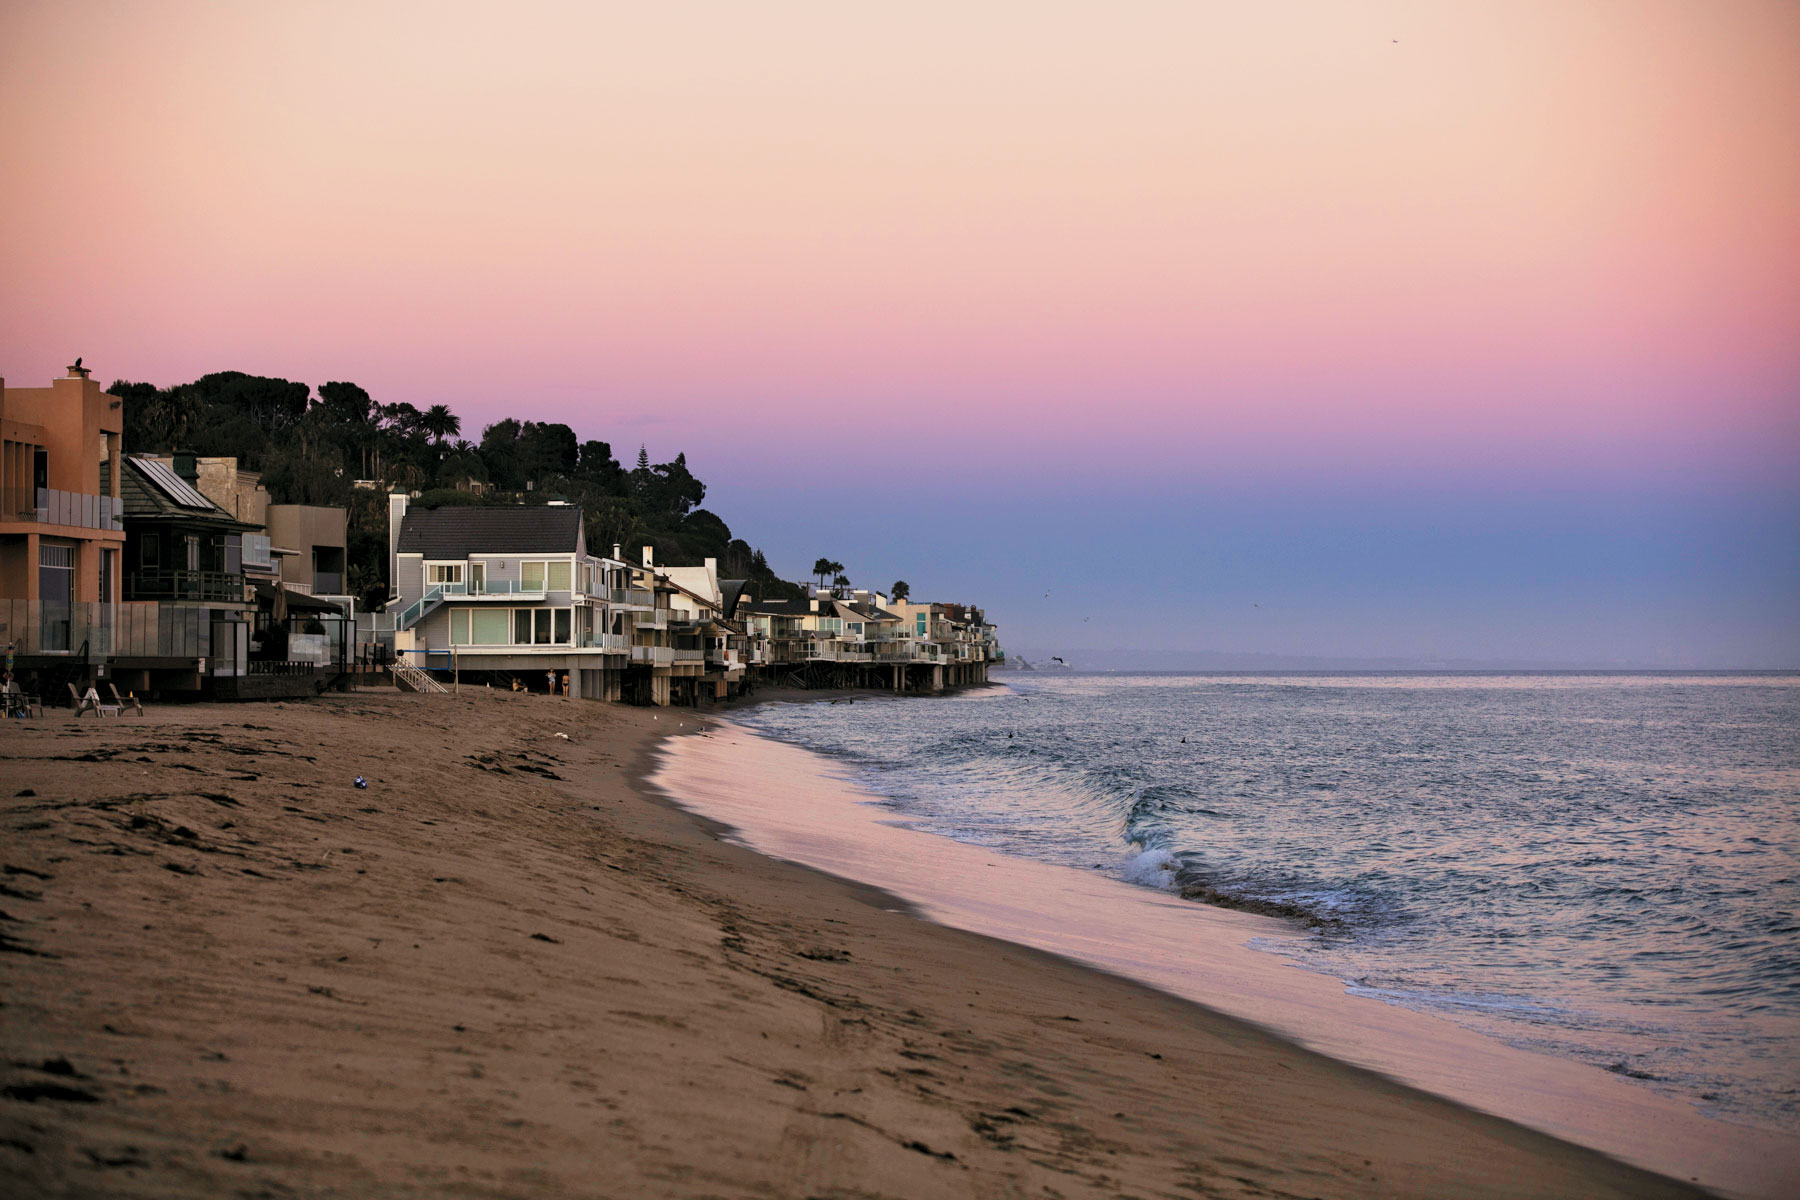 The light in Malibu at the golden hour—that's what photographers call the hour before sunset when daylight is redder and softer than at any other time.